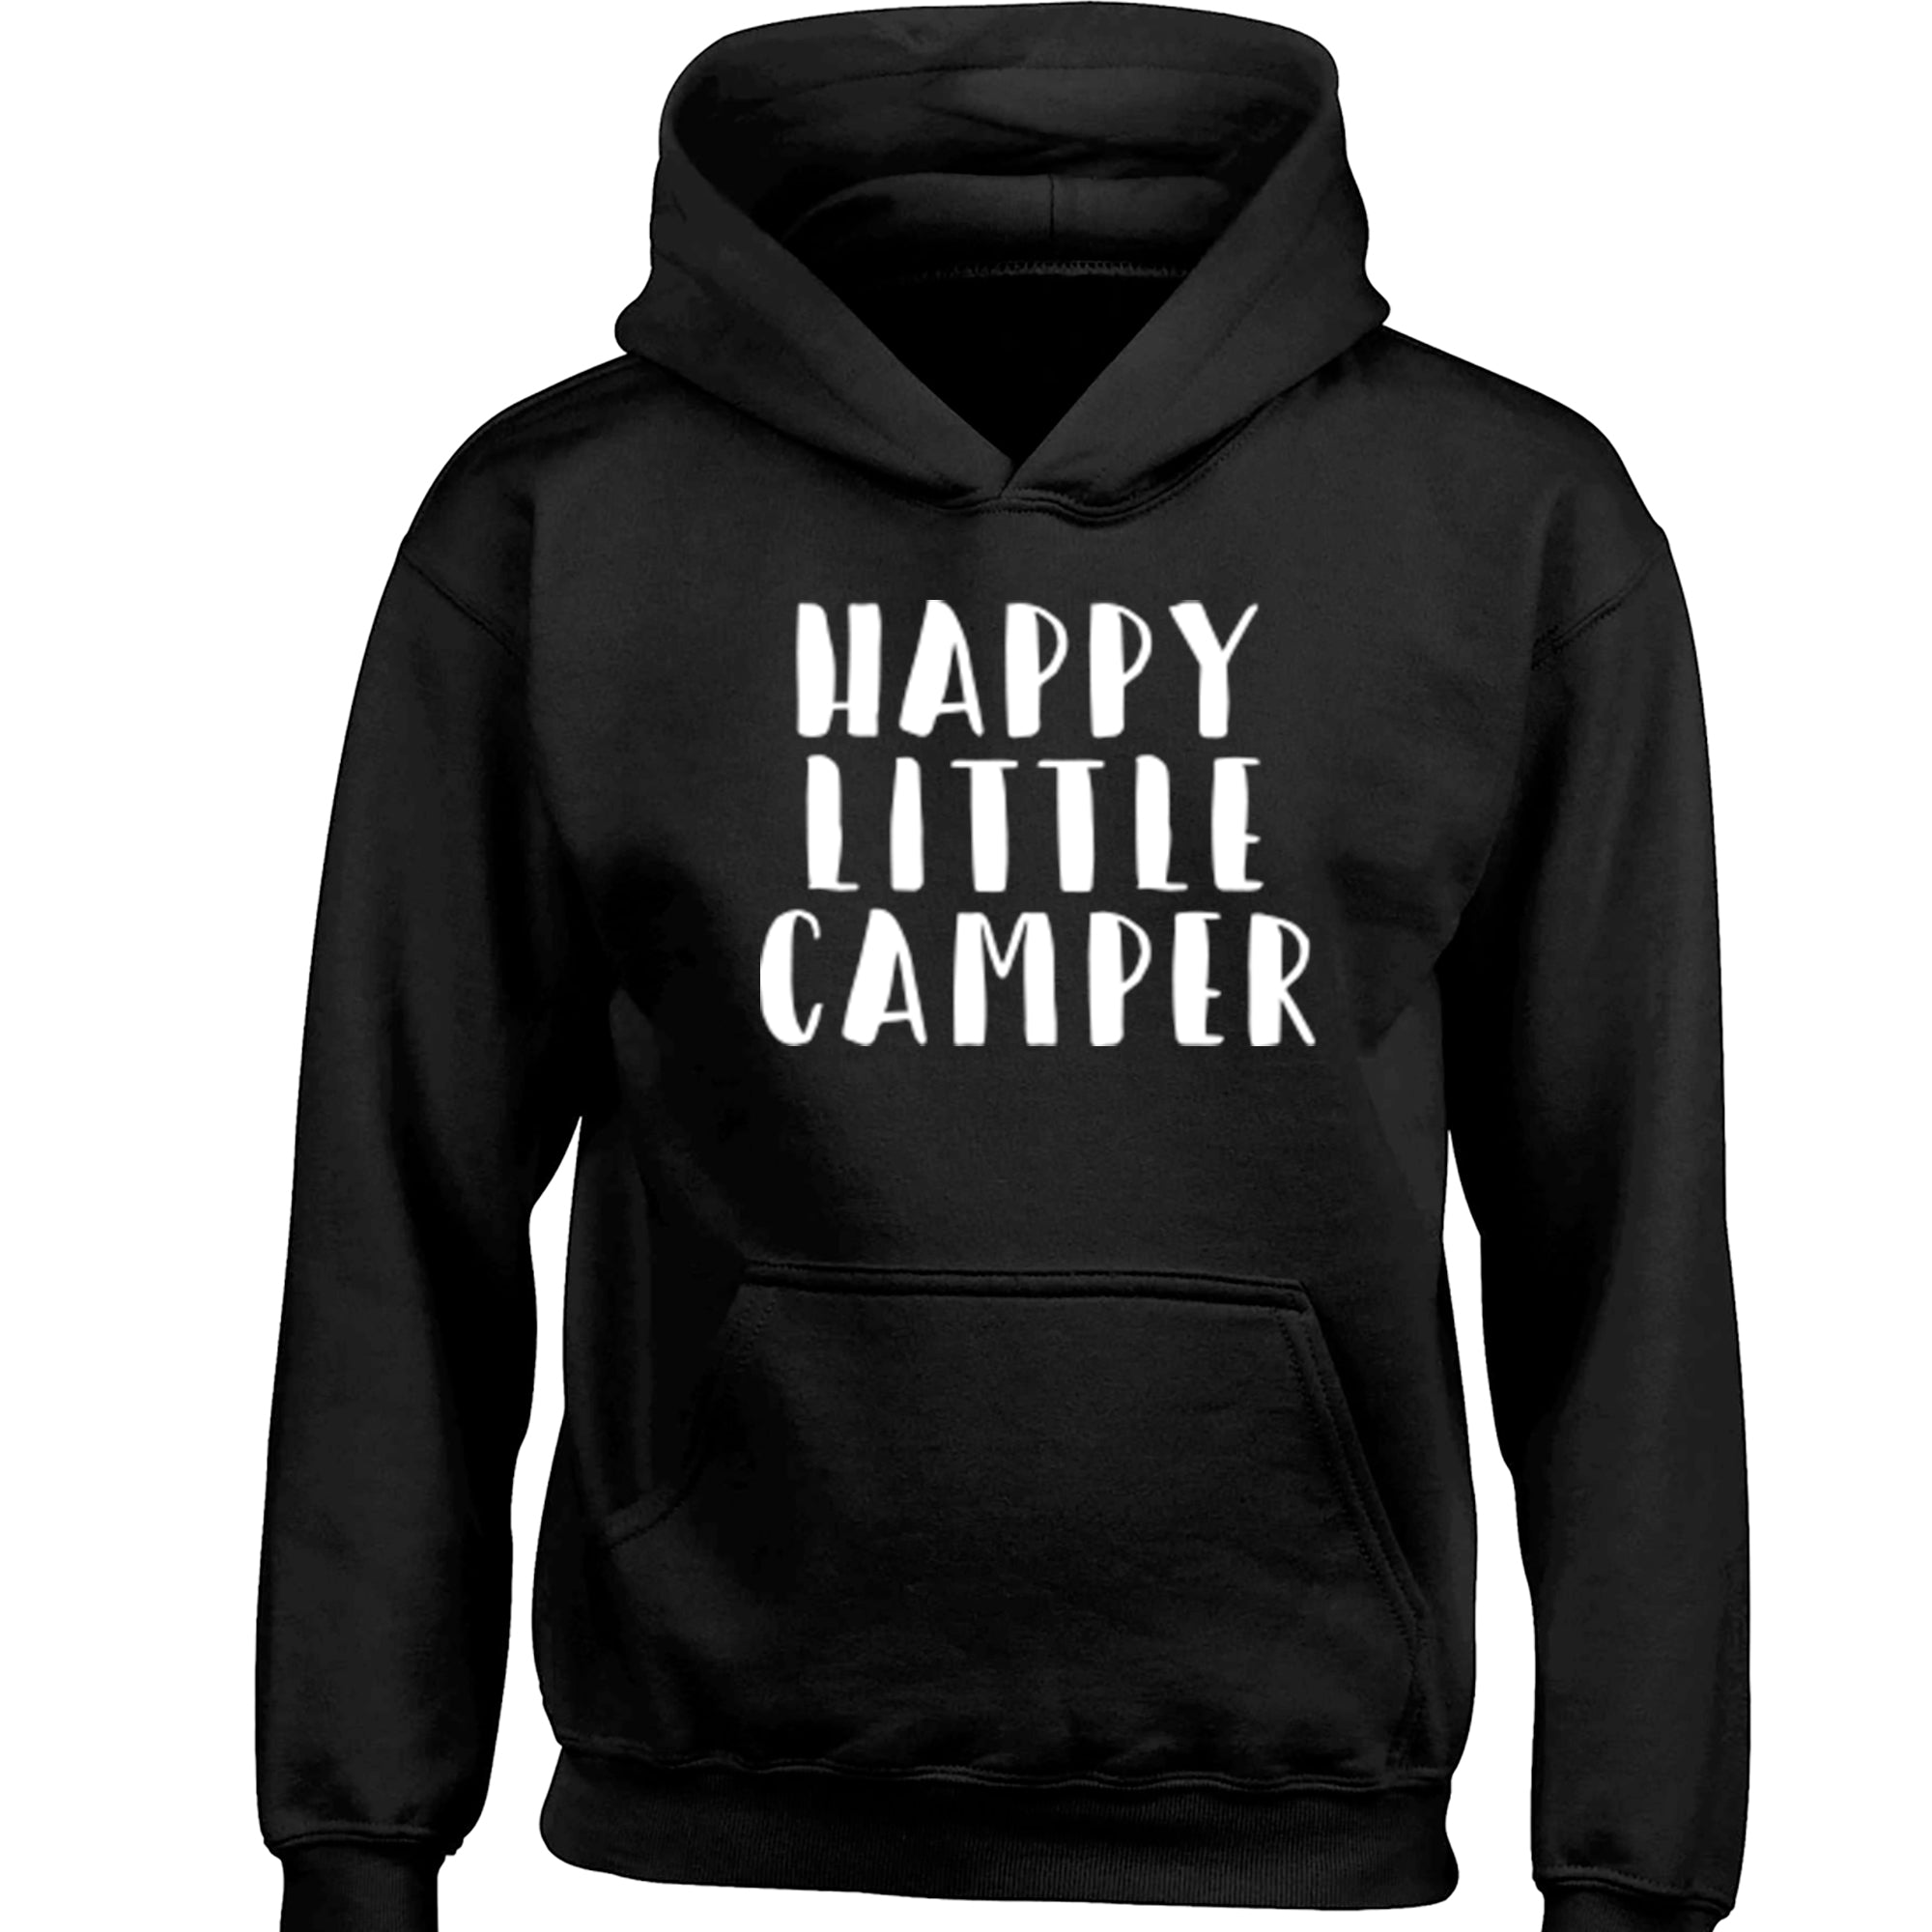 Happy Little Camper Childrens Ages 3/4-12/14 Unisex Hoodie S0504 - Illustrated Identity Ltd.